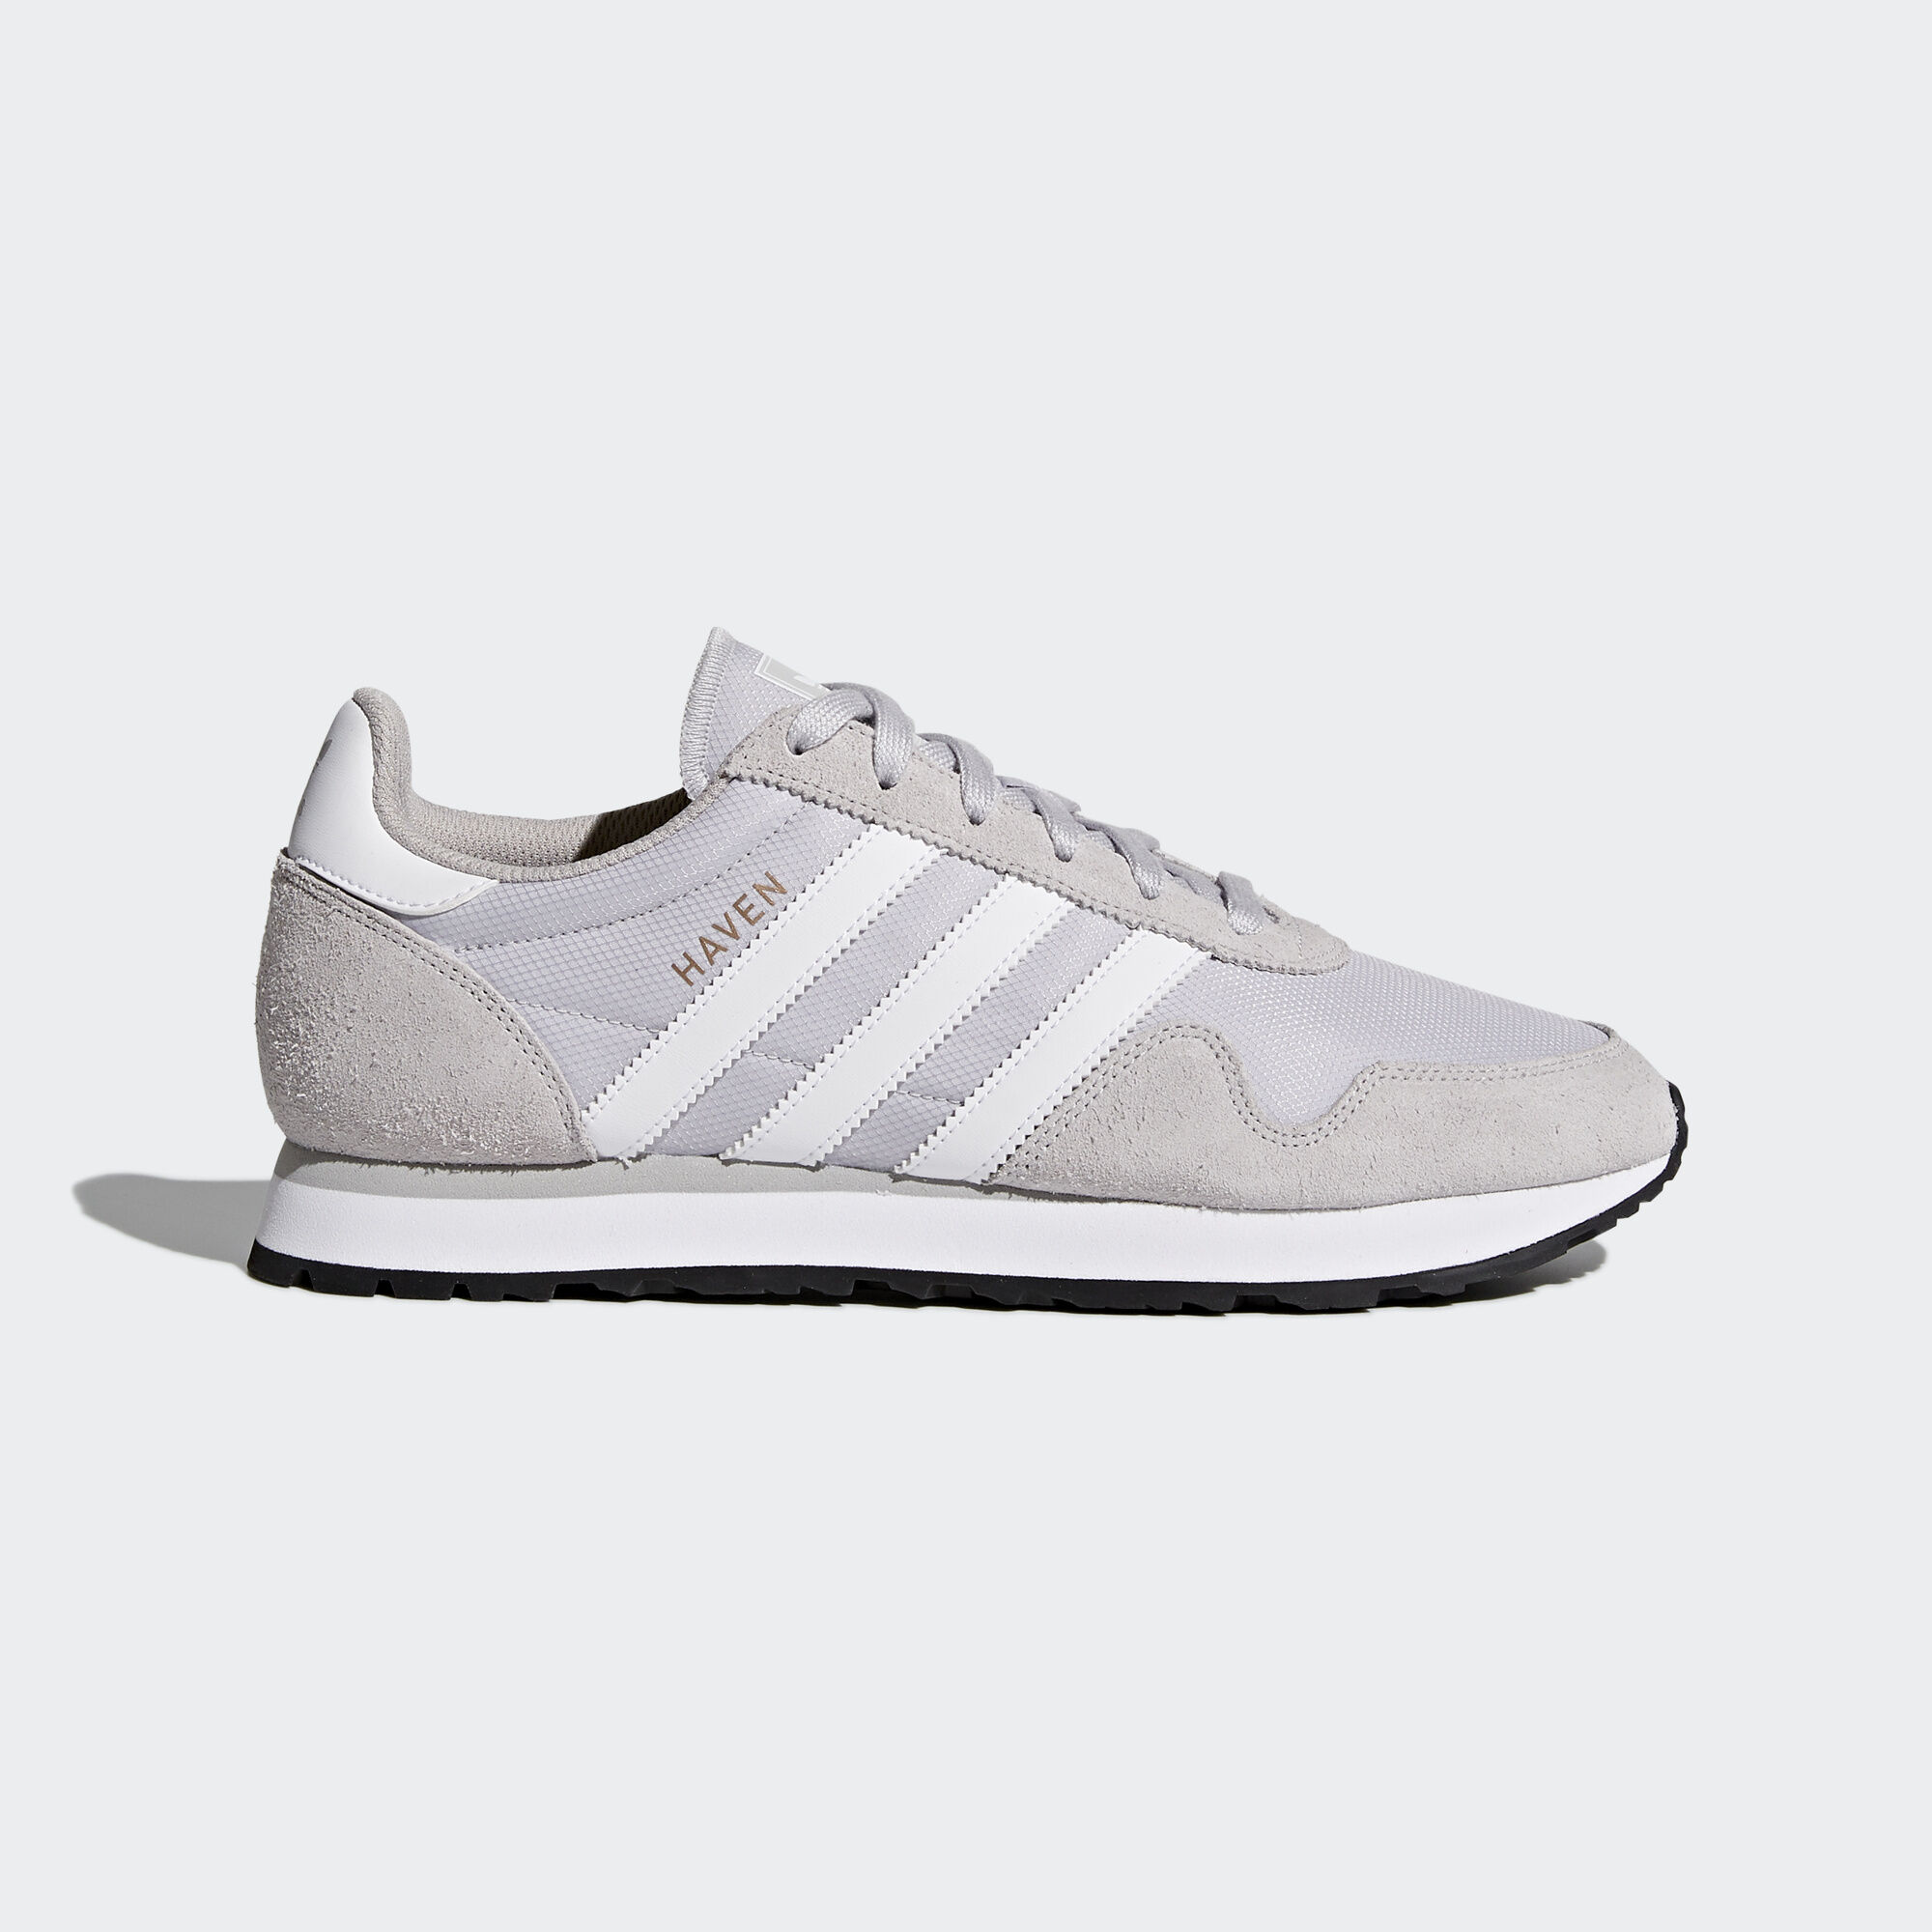 adidas haven shoes lgh solid grey footwear white clear granite. Black Bedroom Furniture Sets. Home Design Ideas